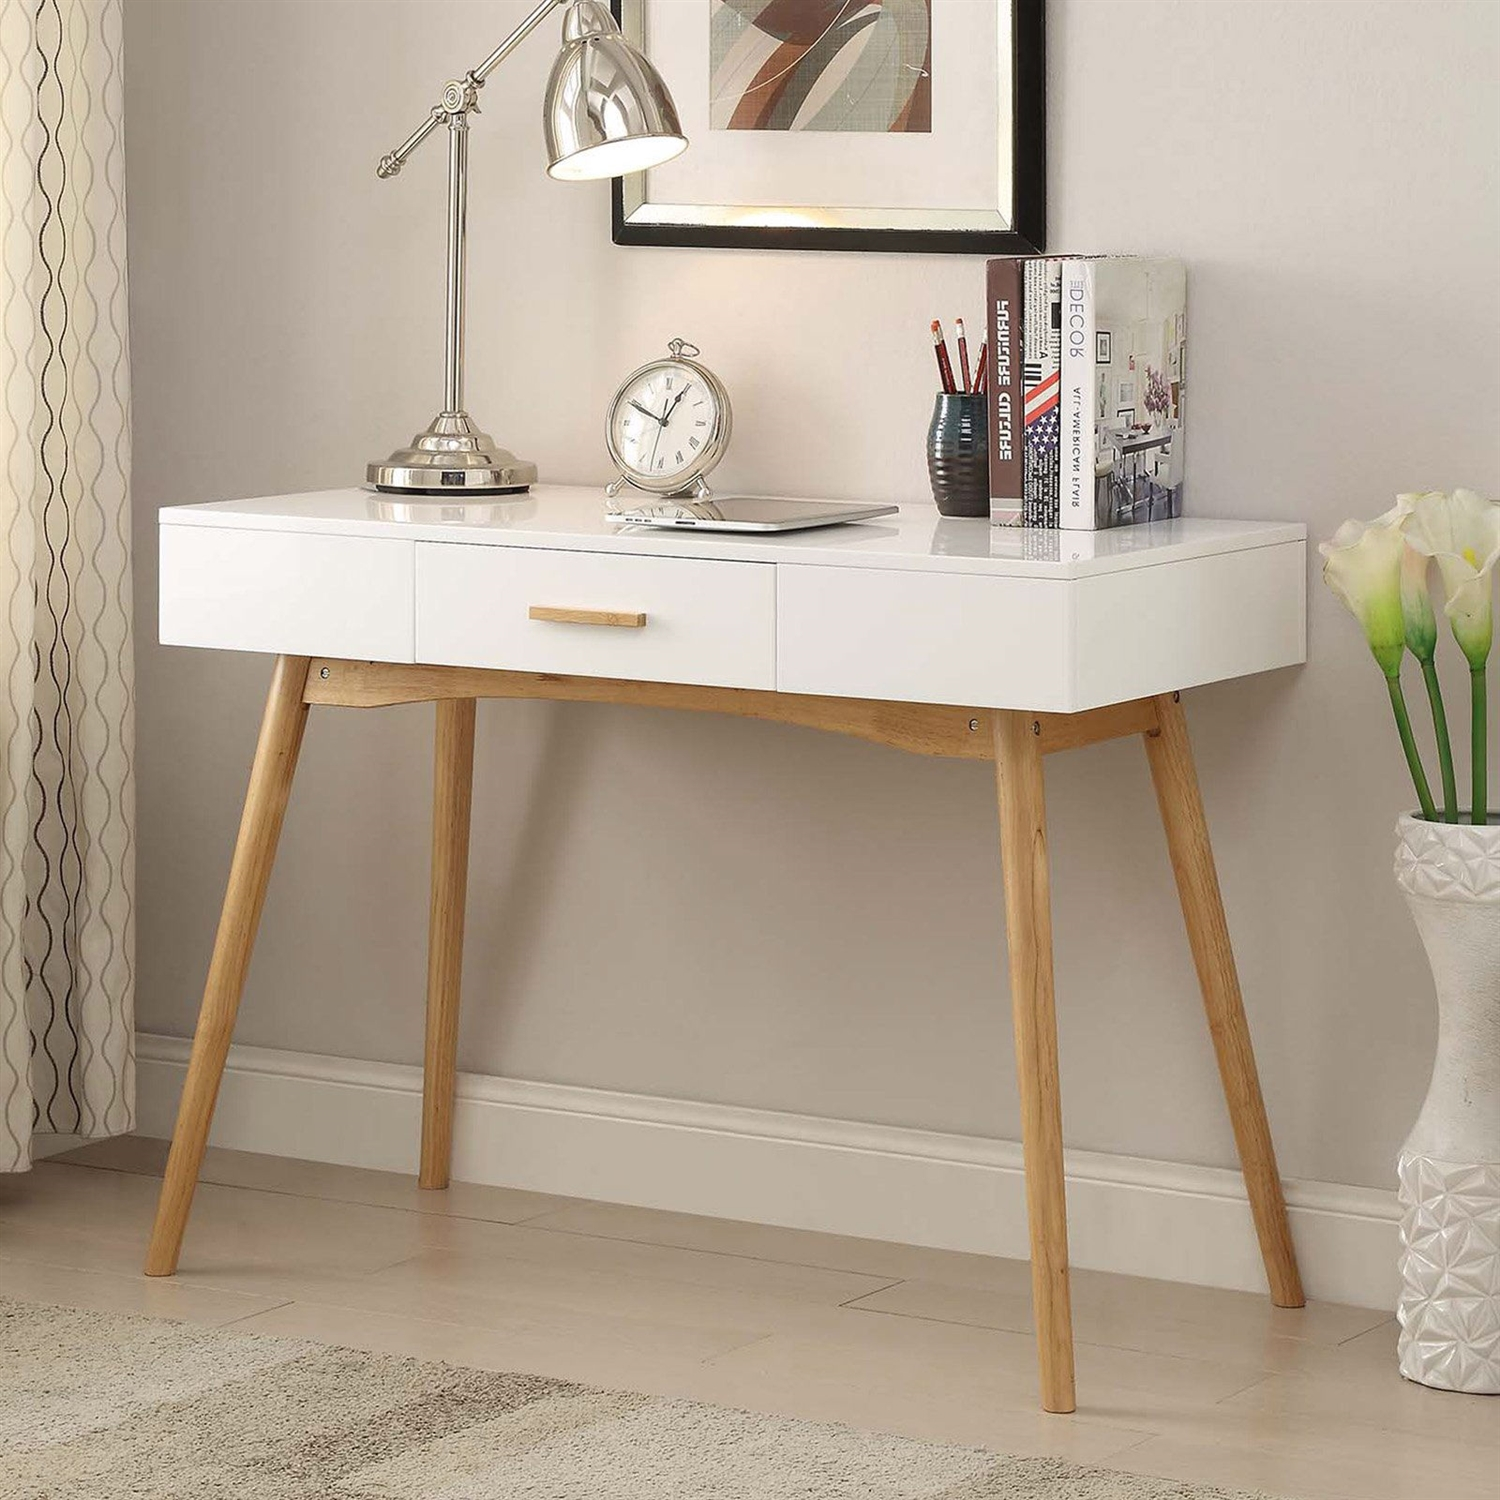 modern laptop writing desk in white with natural mid-century style